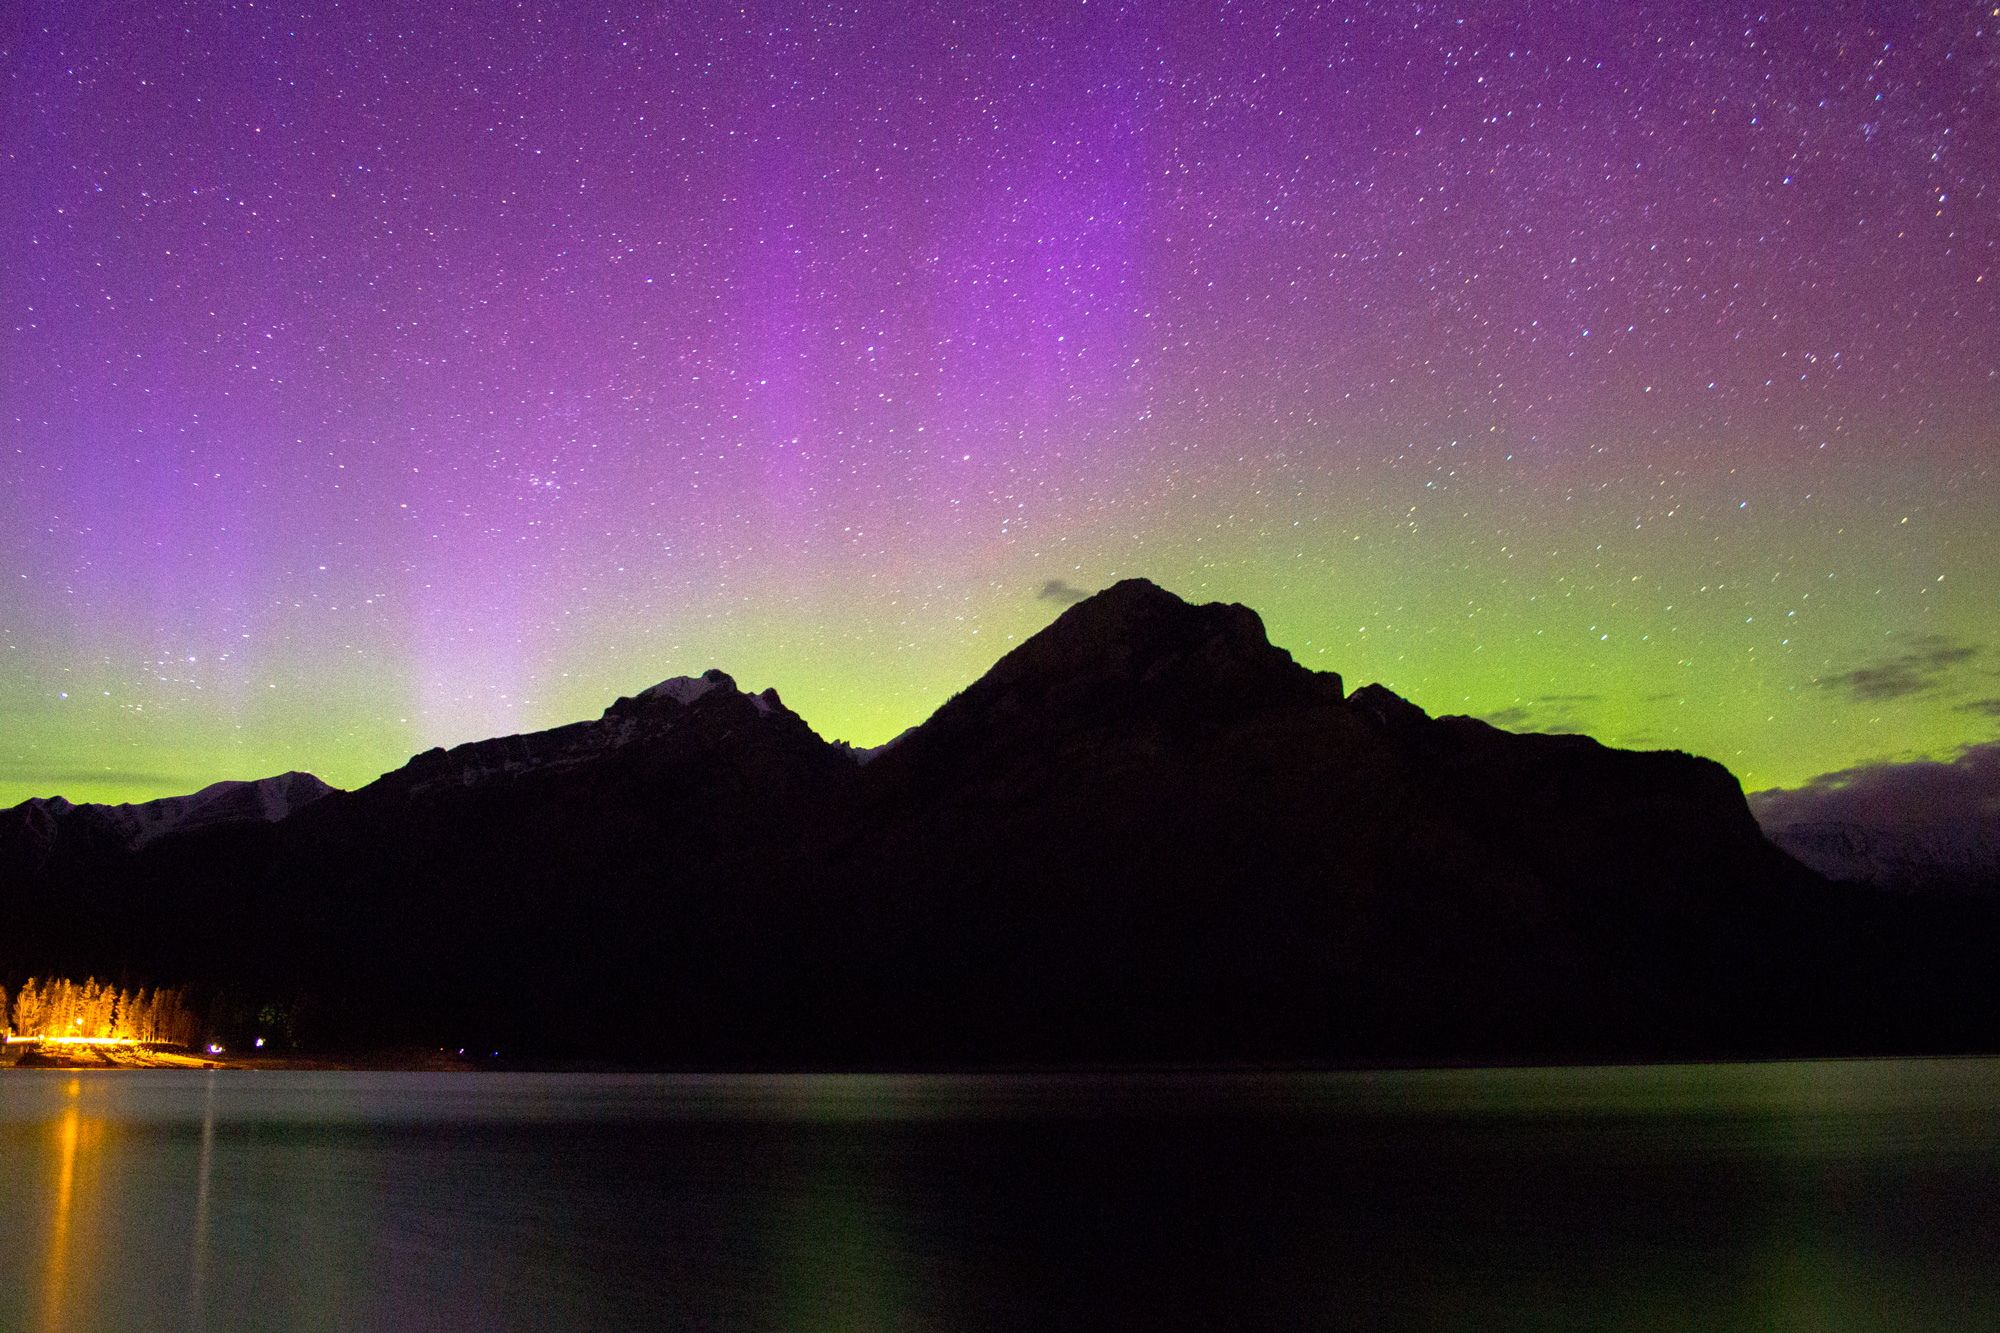 Catching the Northern Lights at Lake Minnewanka is one of the top things to do in Banff